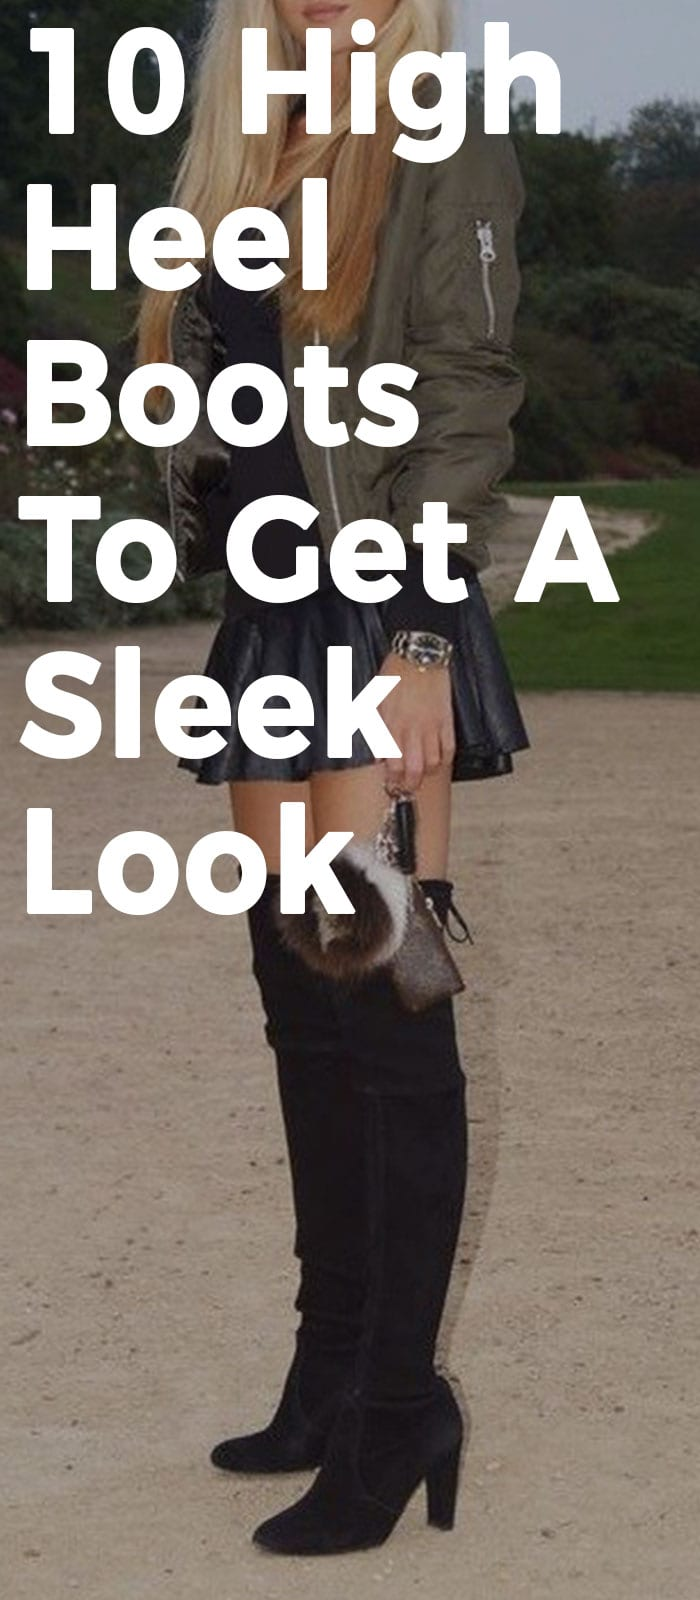 10 High Heel Boots To Get A Sleek Look